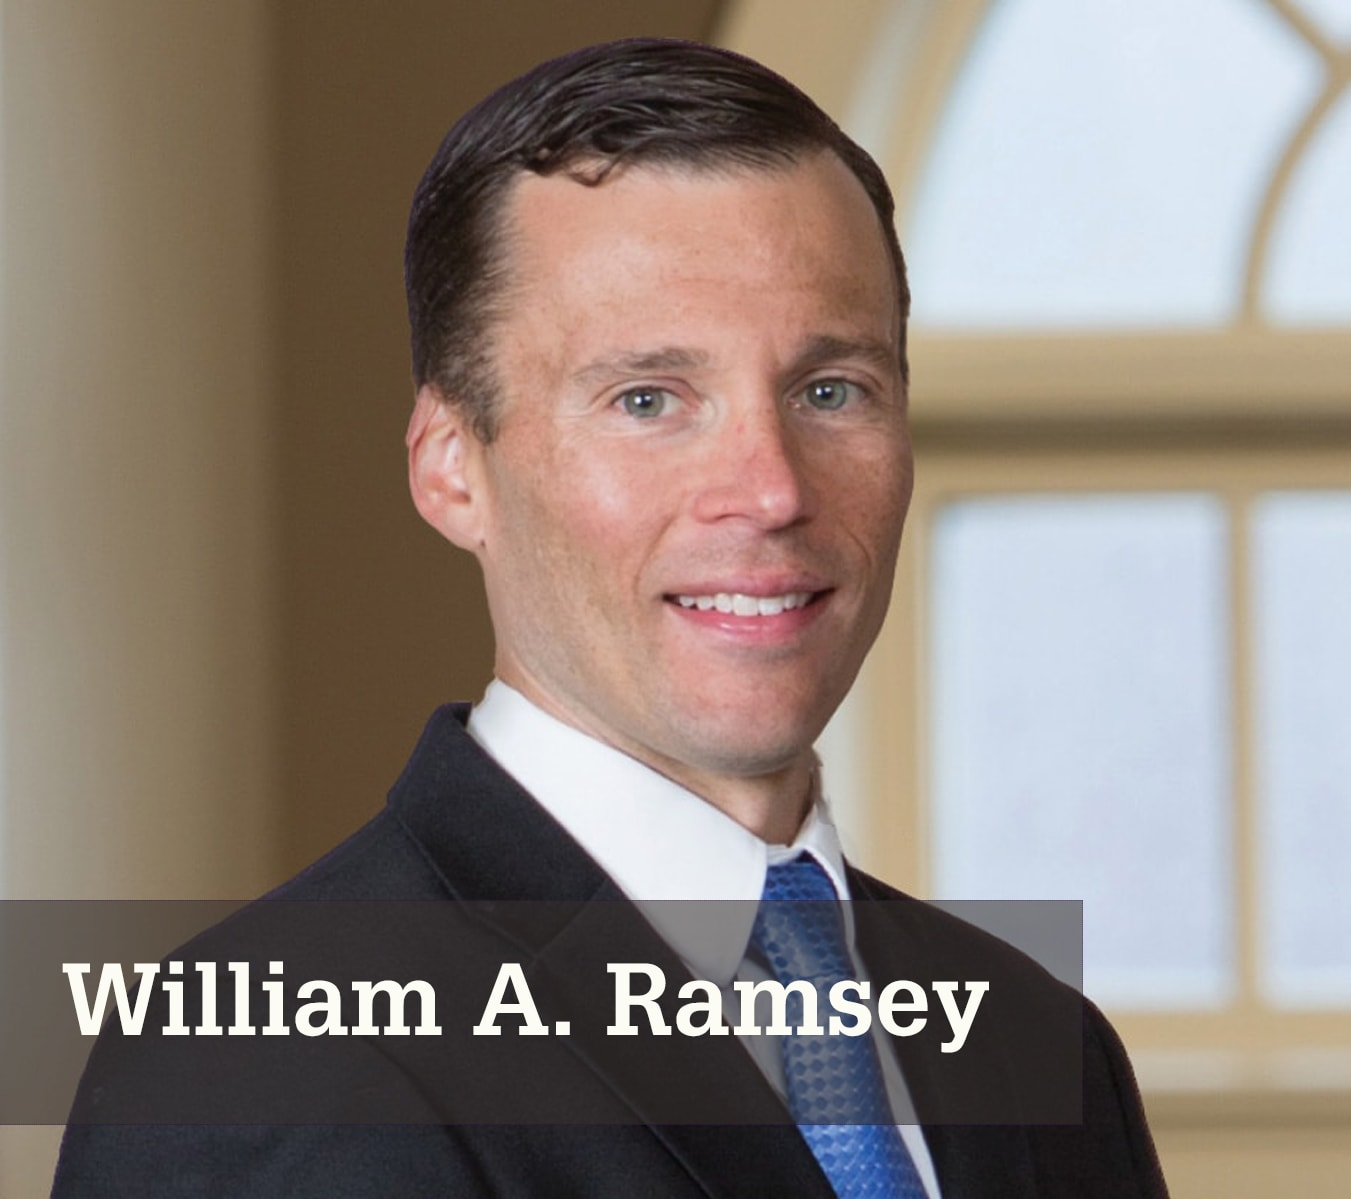 William A. Ramsey